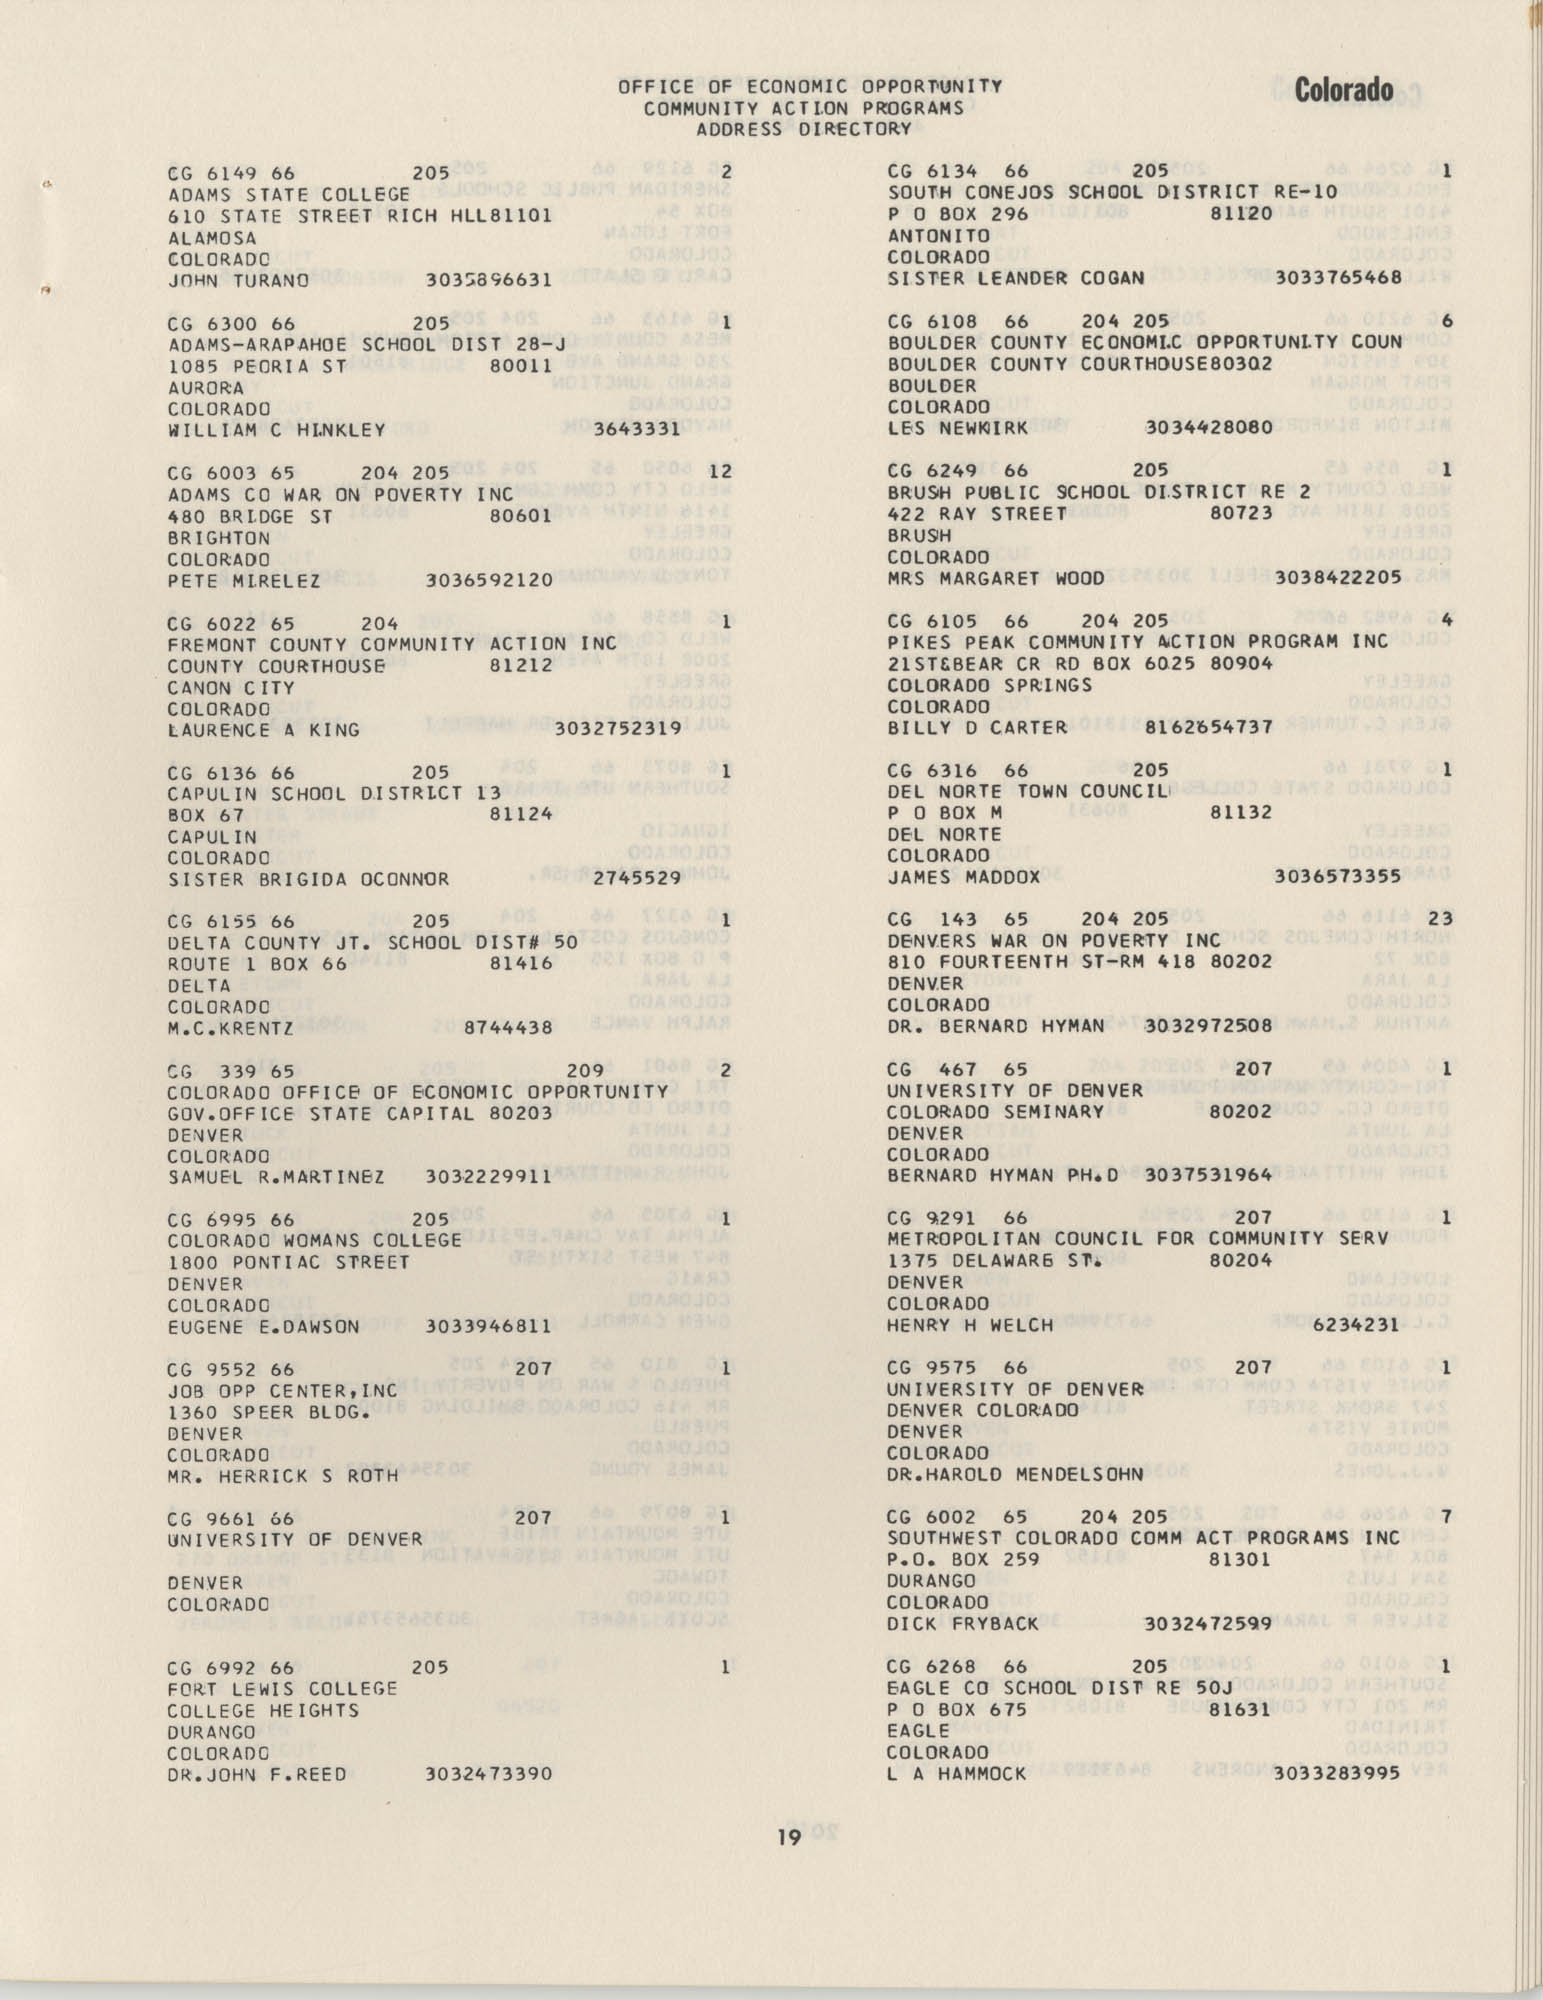 Community Action Programs Directory, June 15, 1966, Page 19